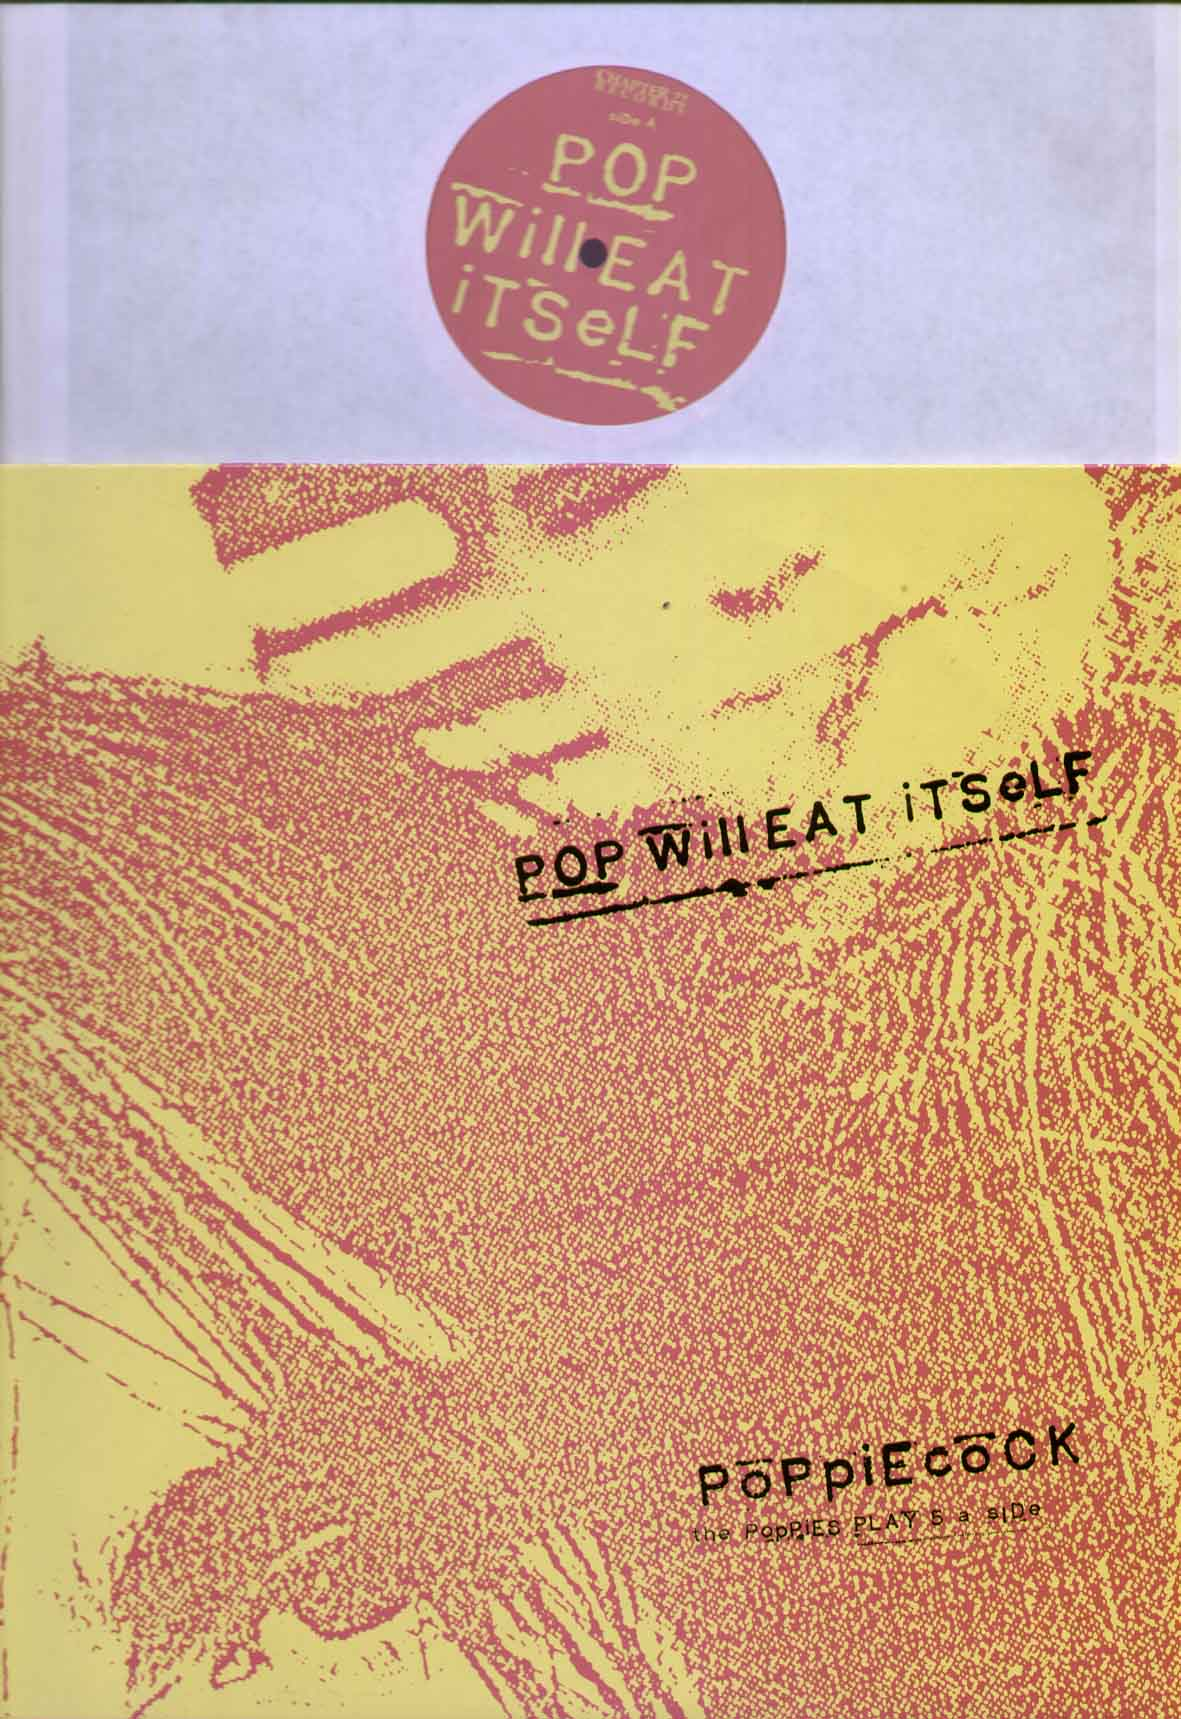 Pop Will Eat Itself Poppiecock LP